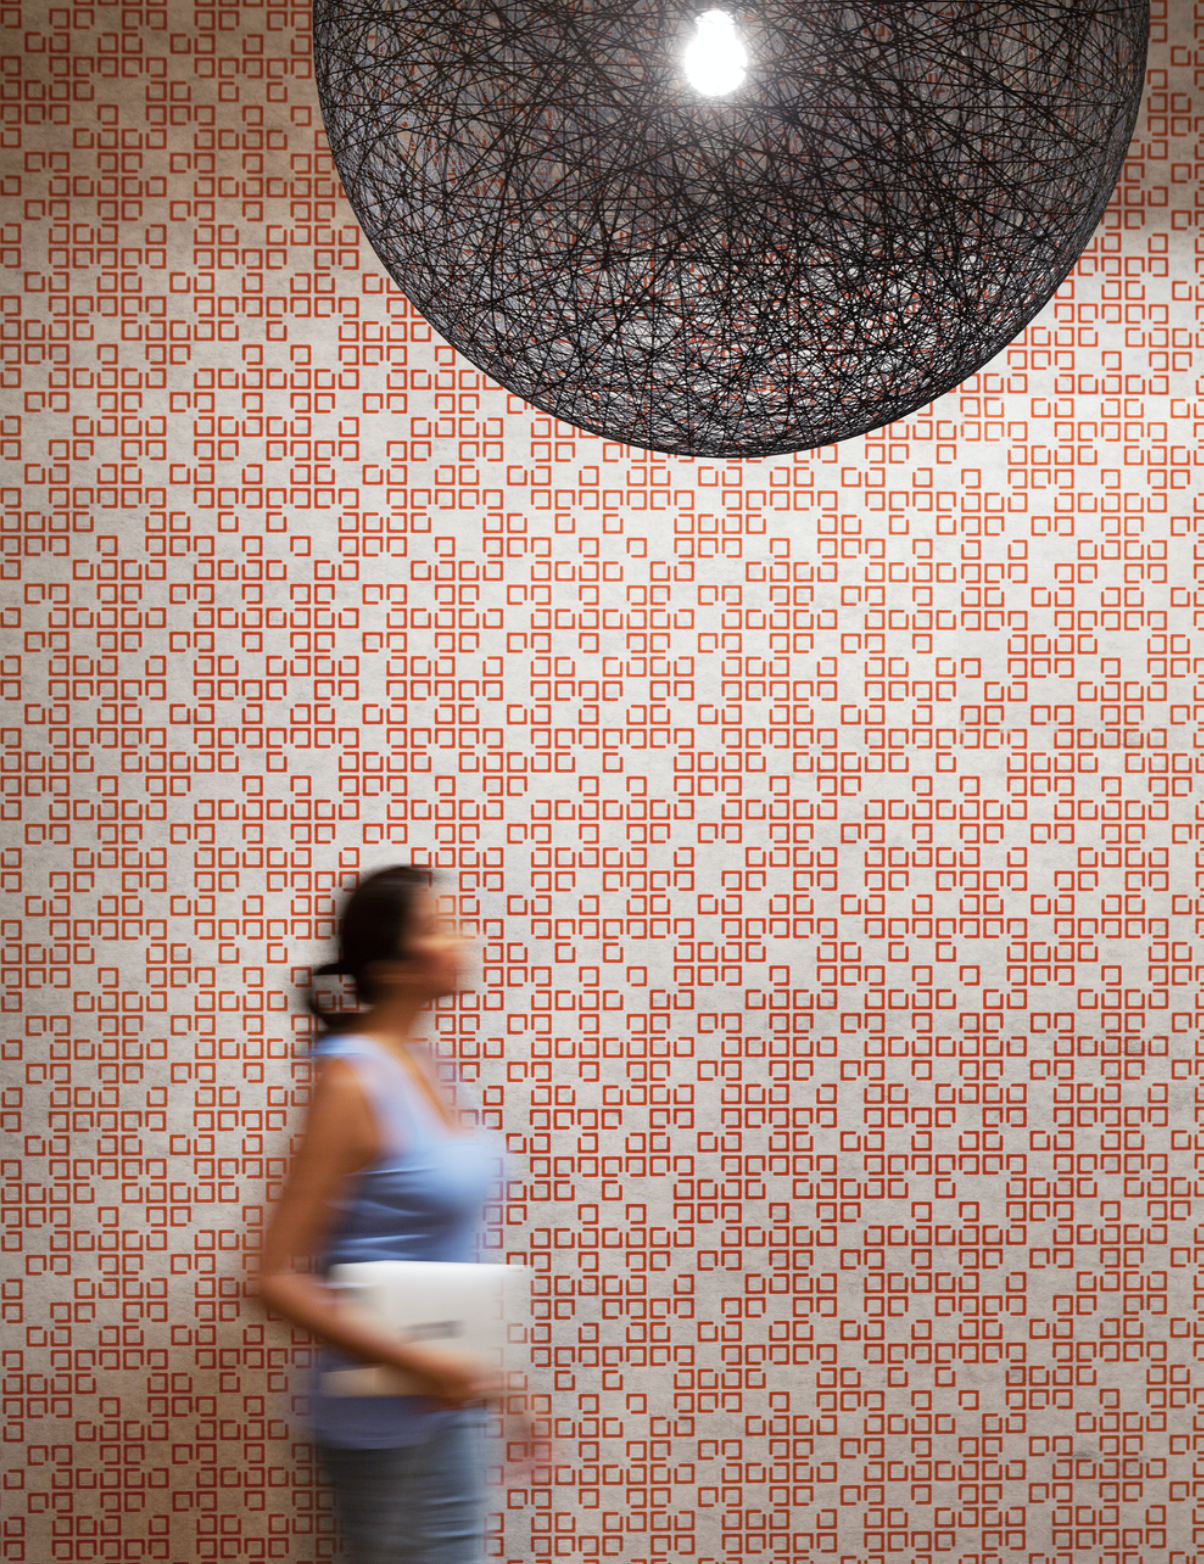 Mura acoustic wallpaper from Woven Image contains recycled PET